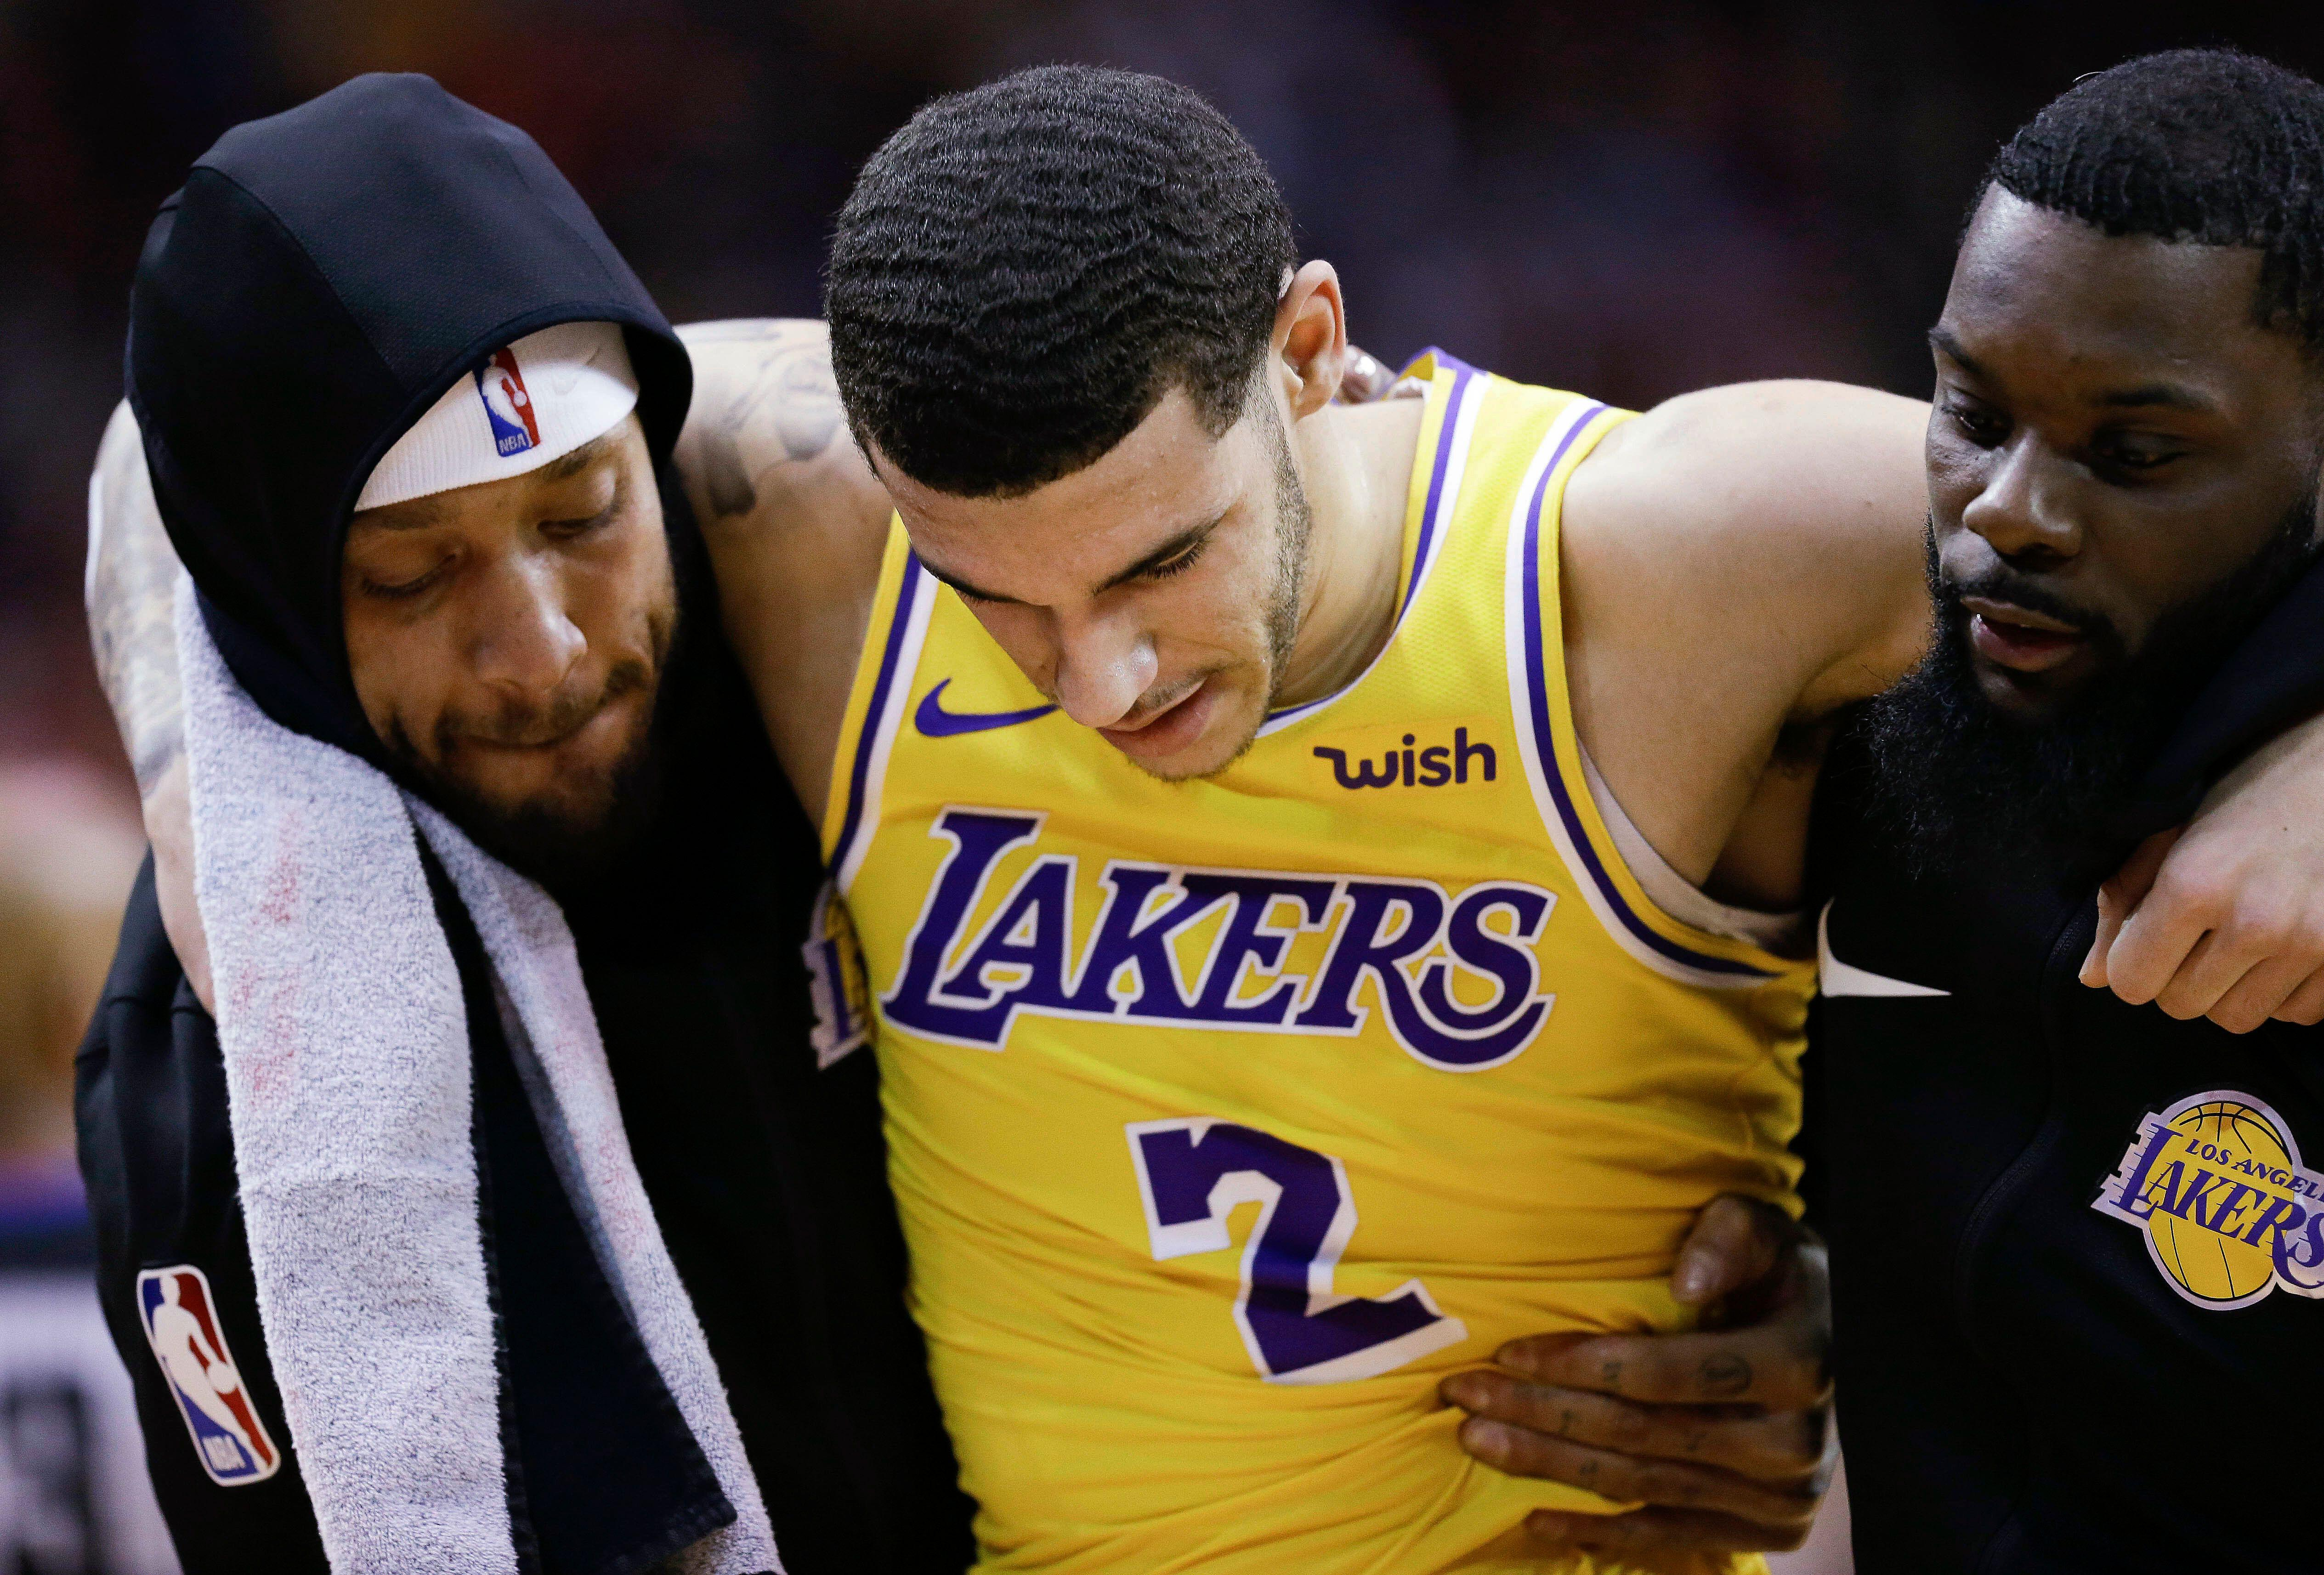 e0a2f16300ae Lakers had to stop Lonzo Ball from unapproved surgery  Report